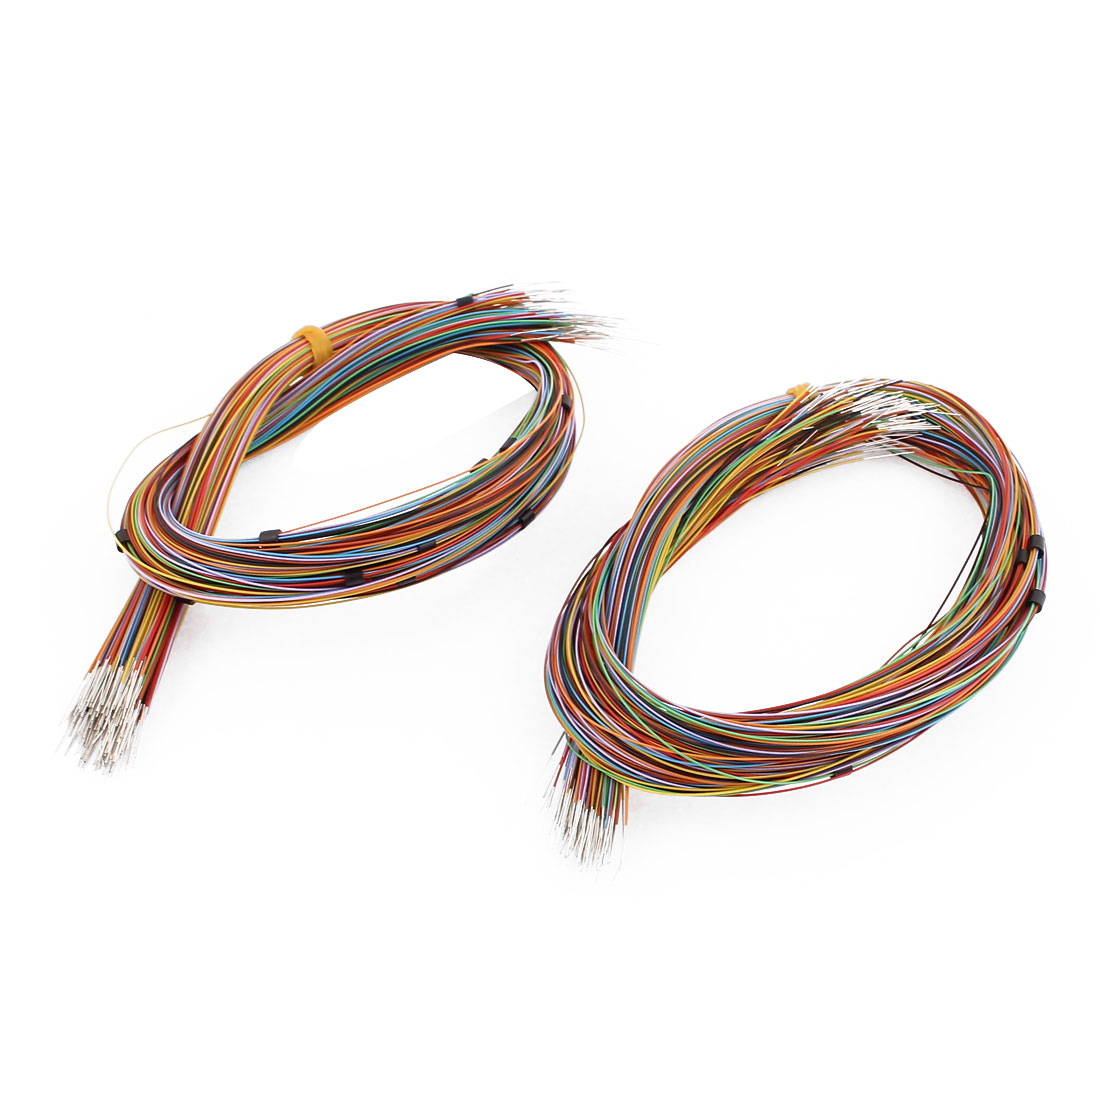 400Pcs High Temperature Resistant Wrapping Wire 370mm x 0.4mm Multicolor